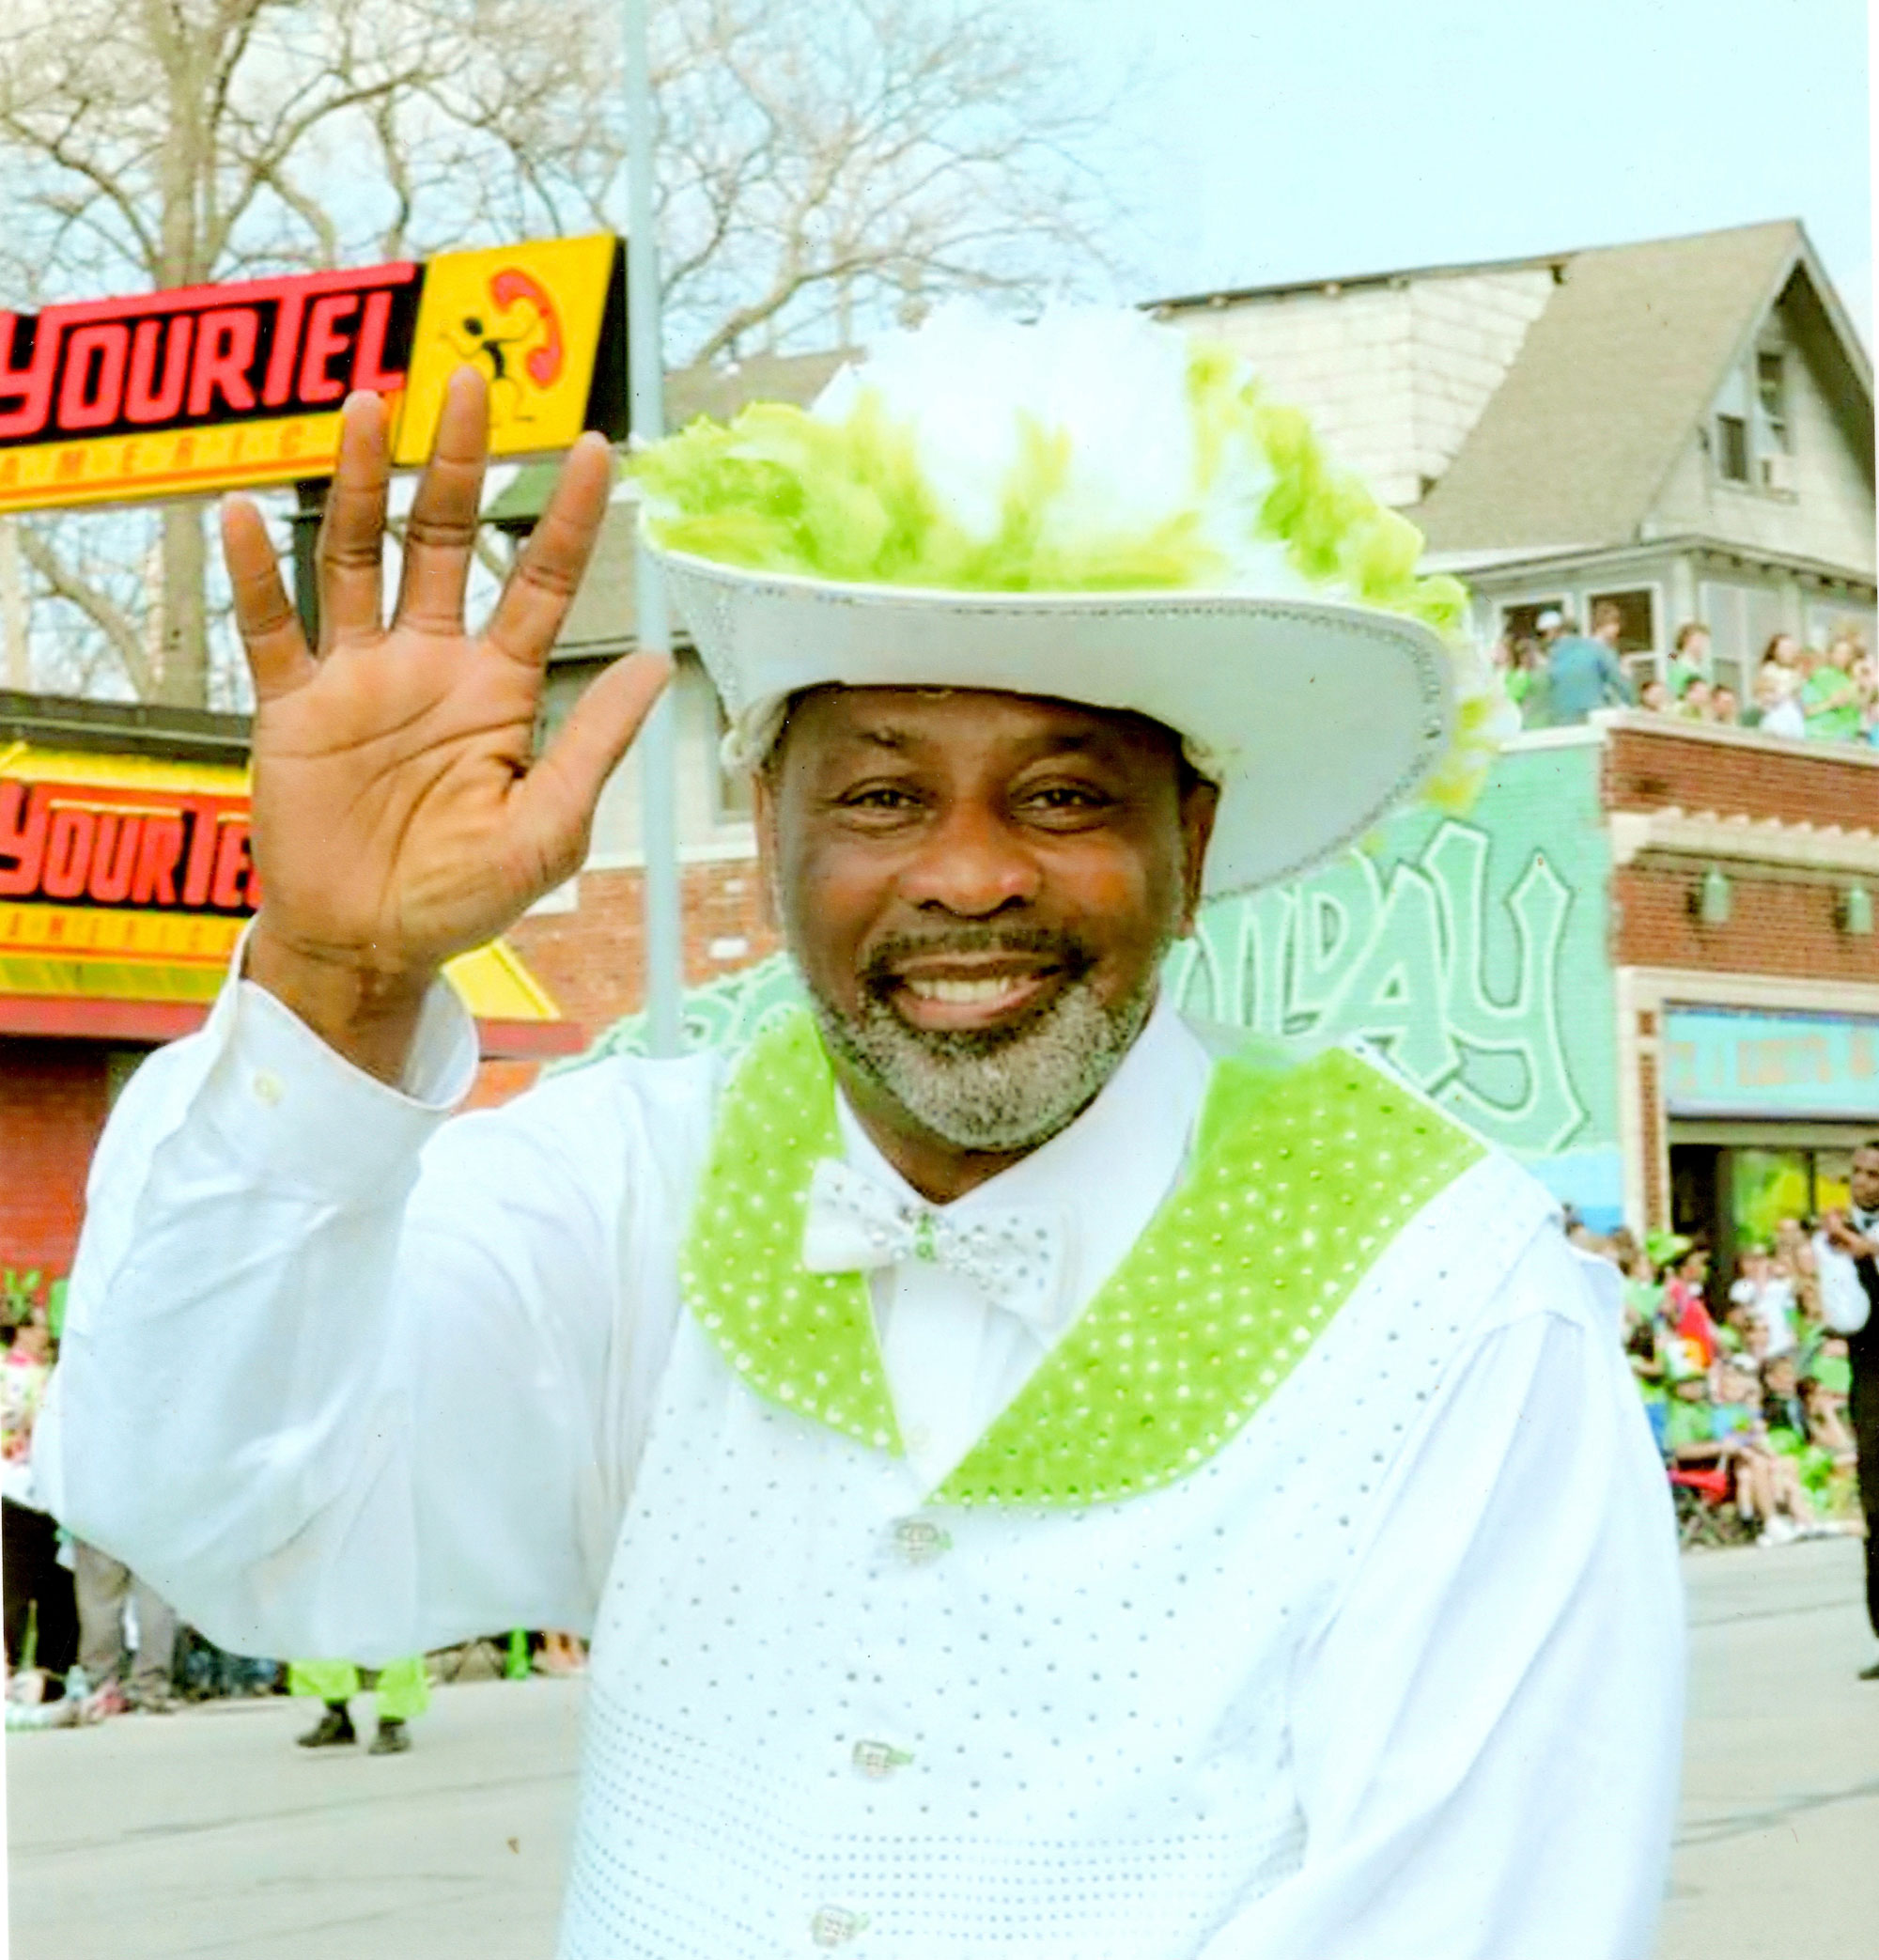 Close up photo of a smiling Willie Smith as he leads the Marching Cobras in a parade